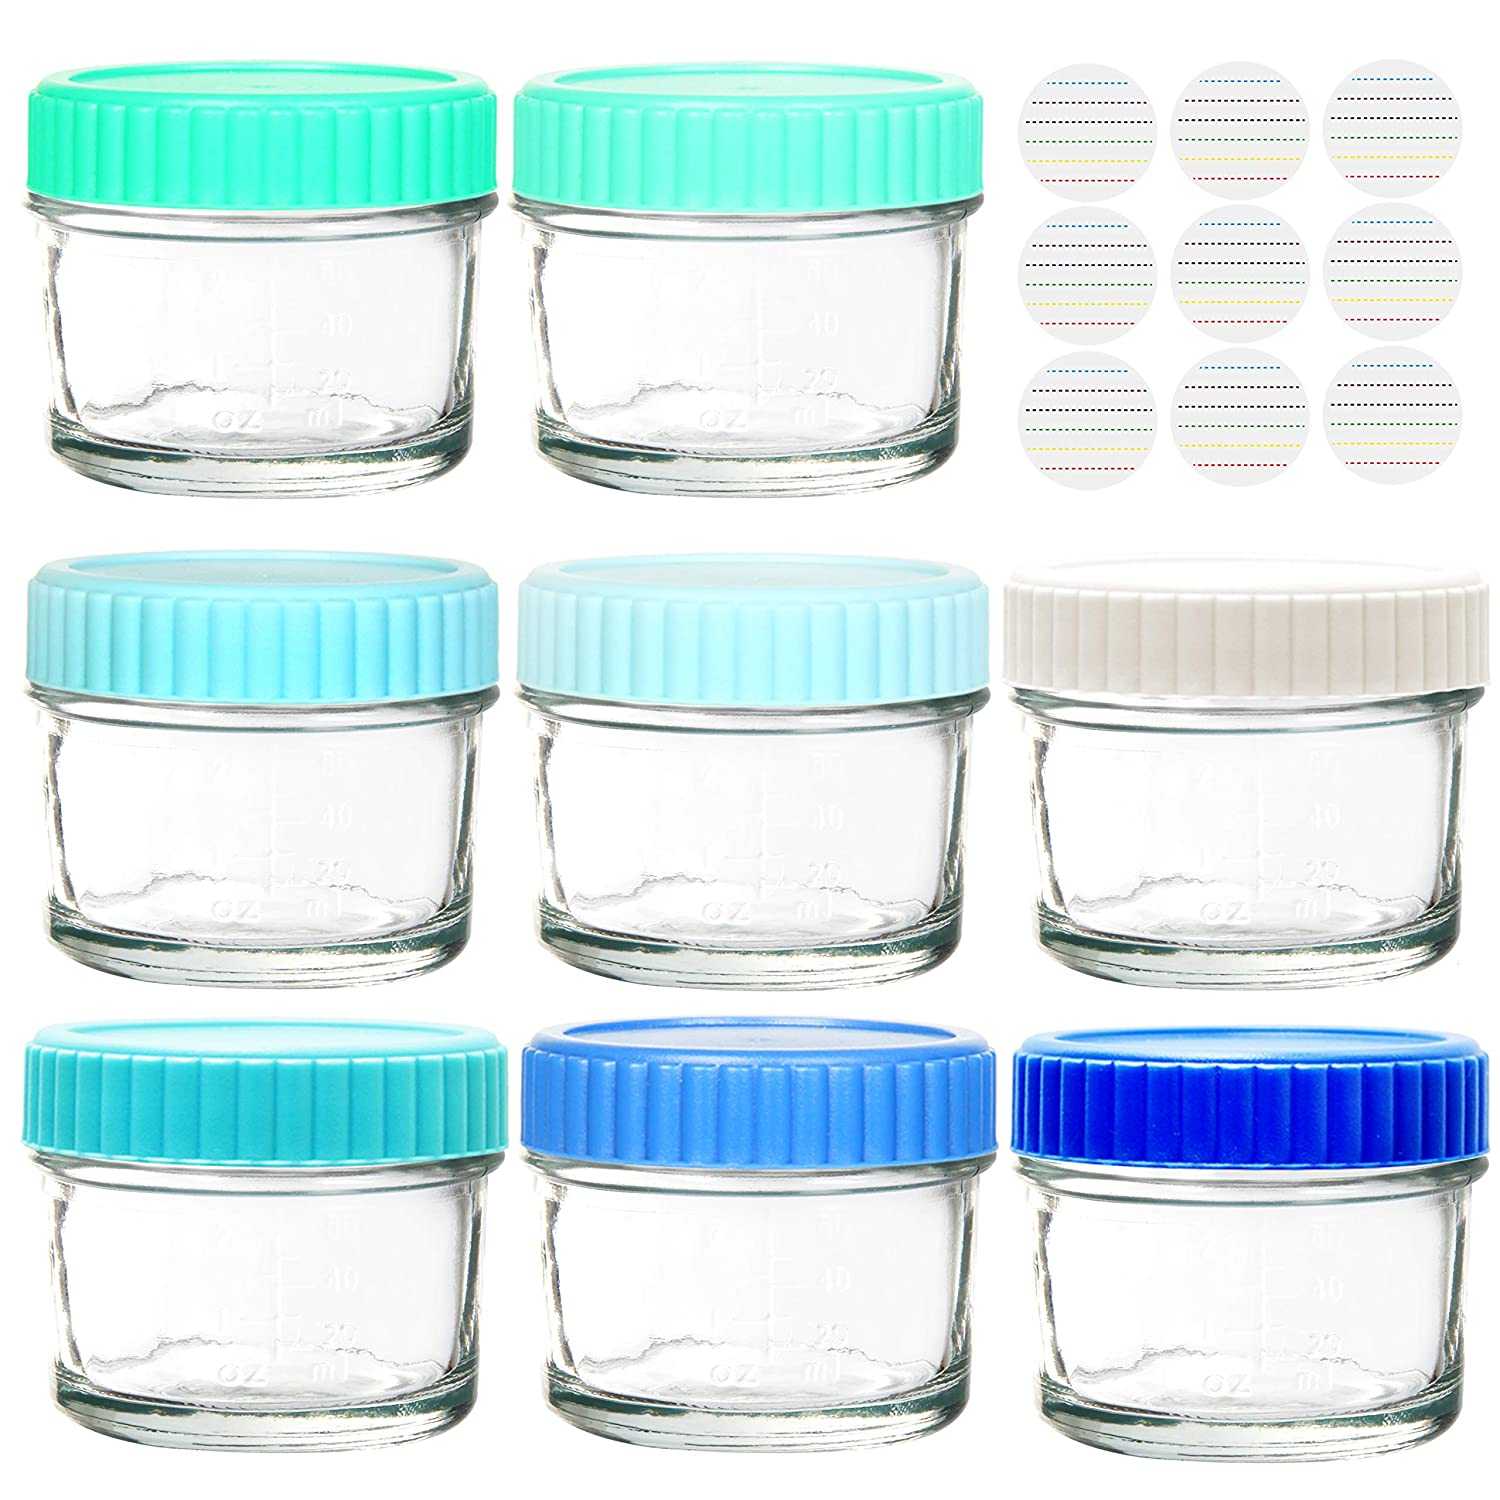 Youngever Glass Baby Food Storage, 4 Ounce Stackable Baby Food Glass Containers with Airtight Lids, Glass Jars with Lids, 8 Coastal Colors (8 Pack)